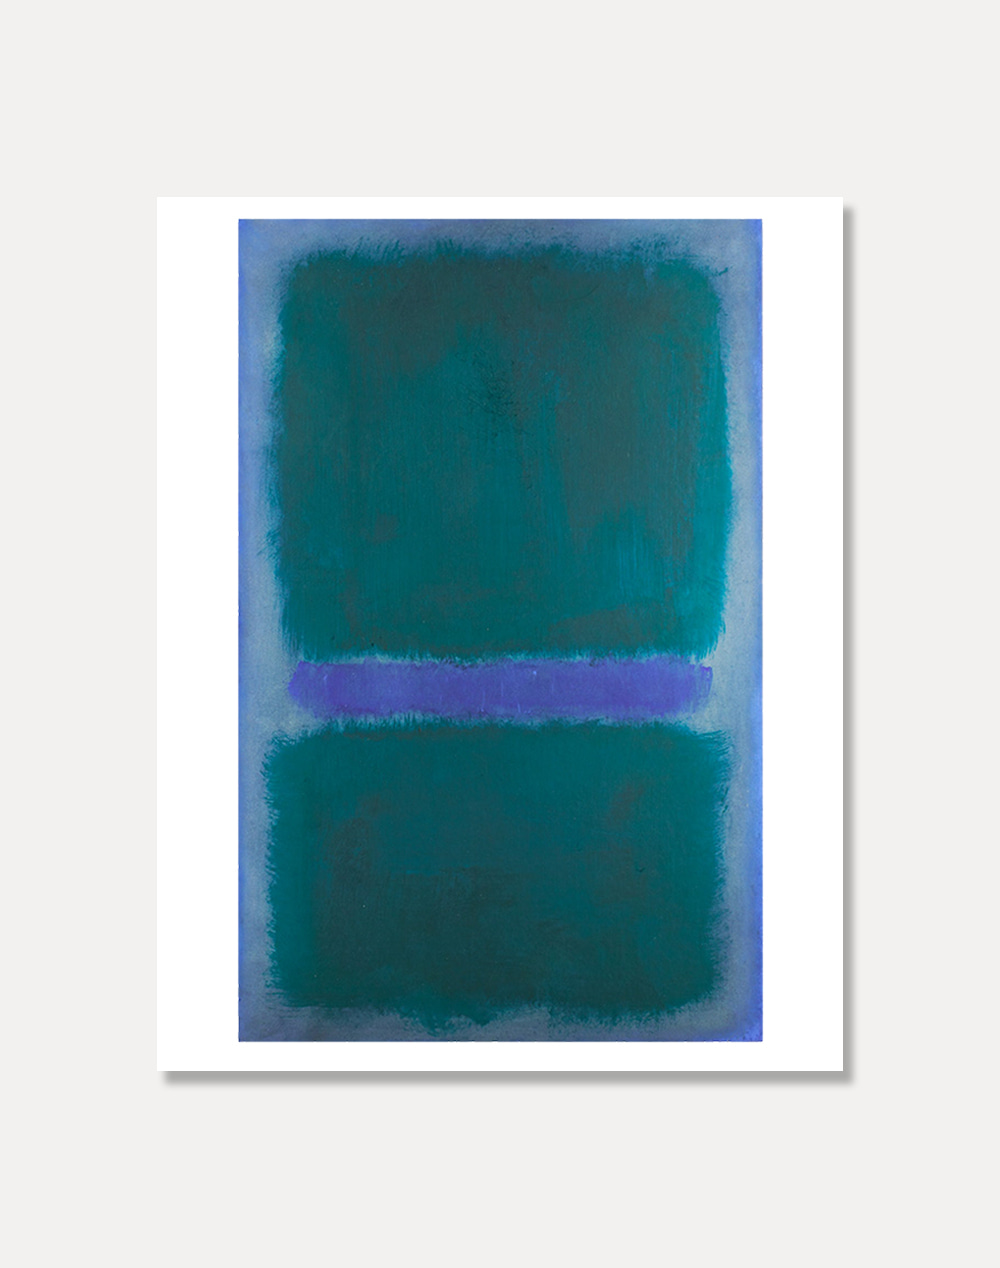 [마크로스코]MARK ROTHKO —Untitled (BlueGreen, Blue on 81 x 101 cm